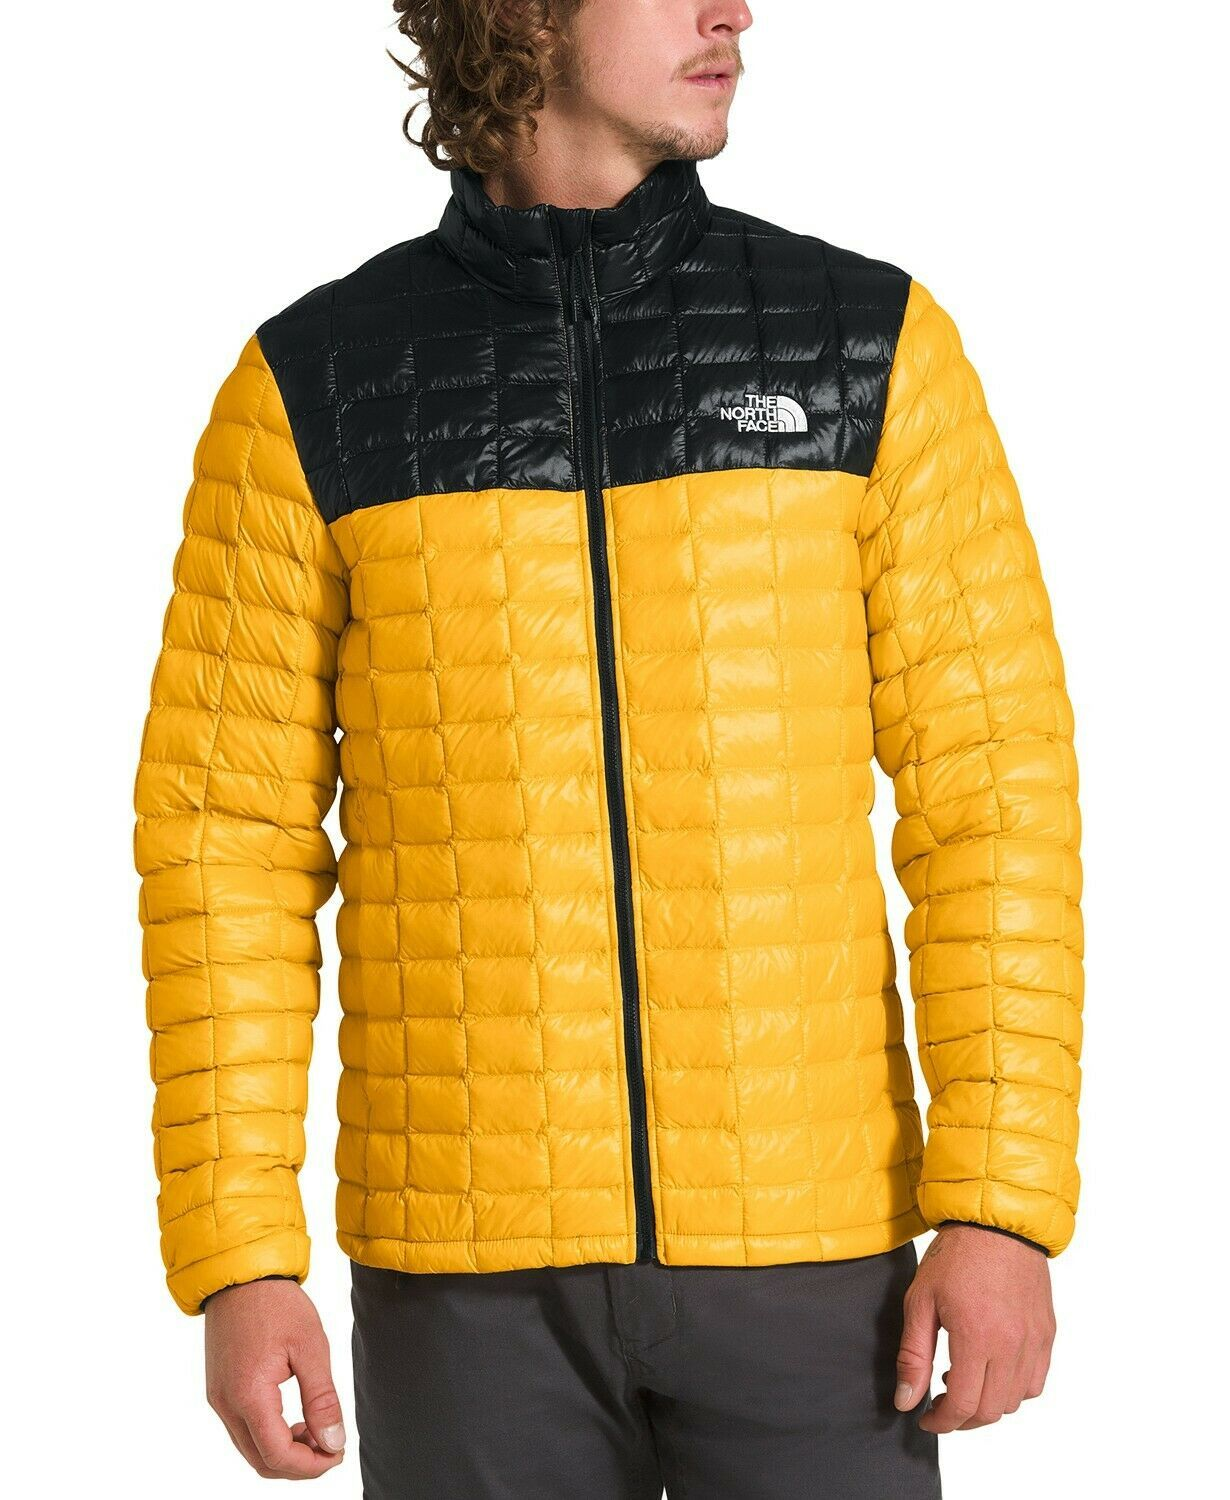 The North Face Mens Thermoball Eco Jacket Yellow Black Size Xl Nwt Ideas Of The North Face Thenorthface North Face Mens Insulated Jackets Packable Jacket [ 1500 x 1230 Pixel ]